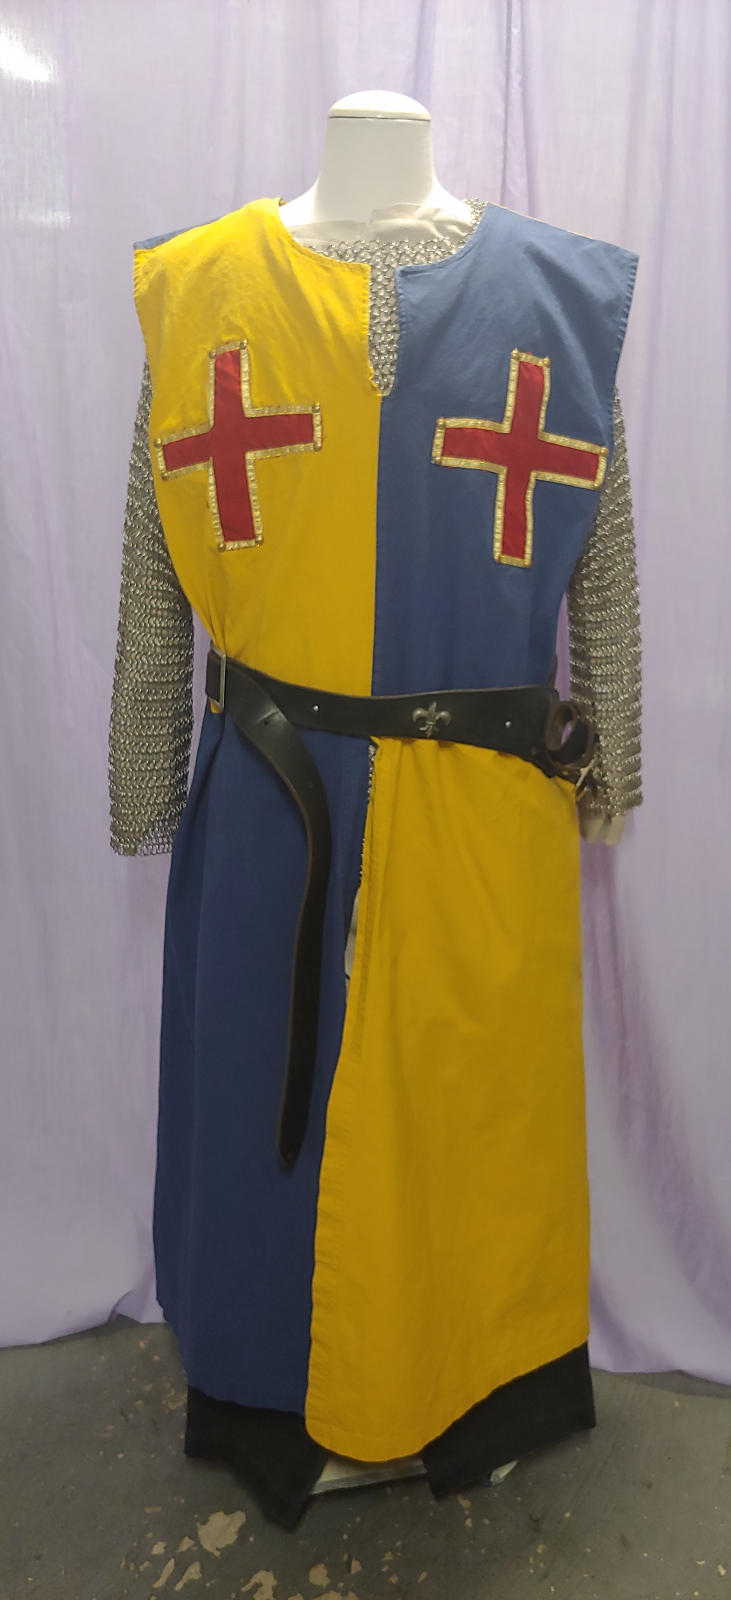 Blue and Yellow Knight